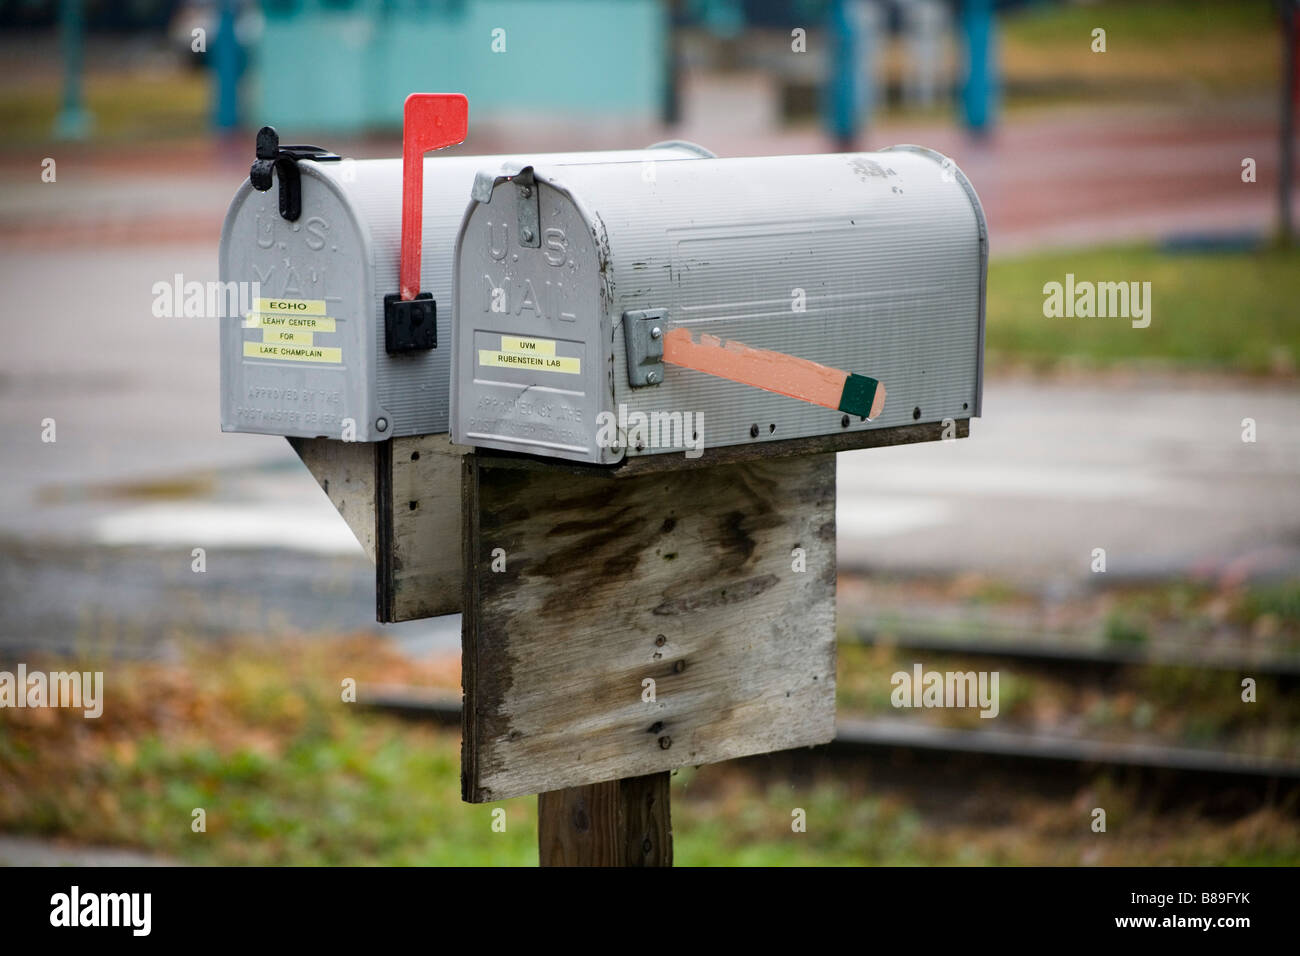 US Mail postboxes - Stock Image